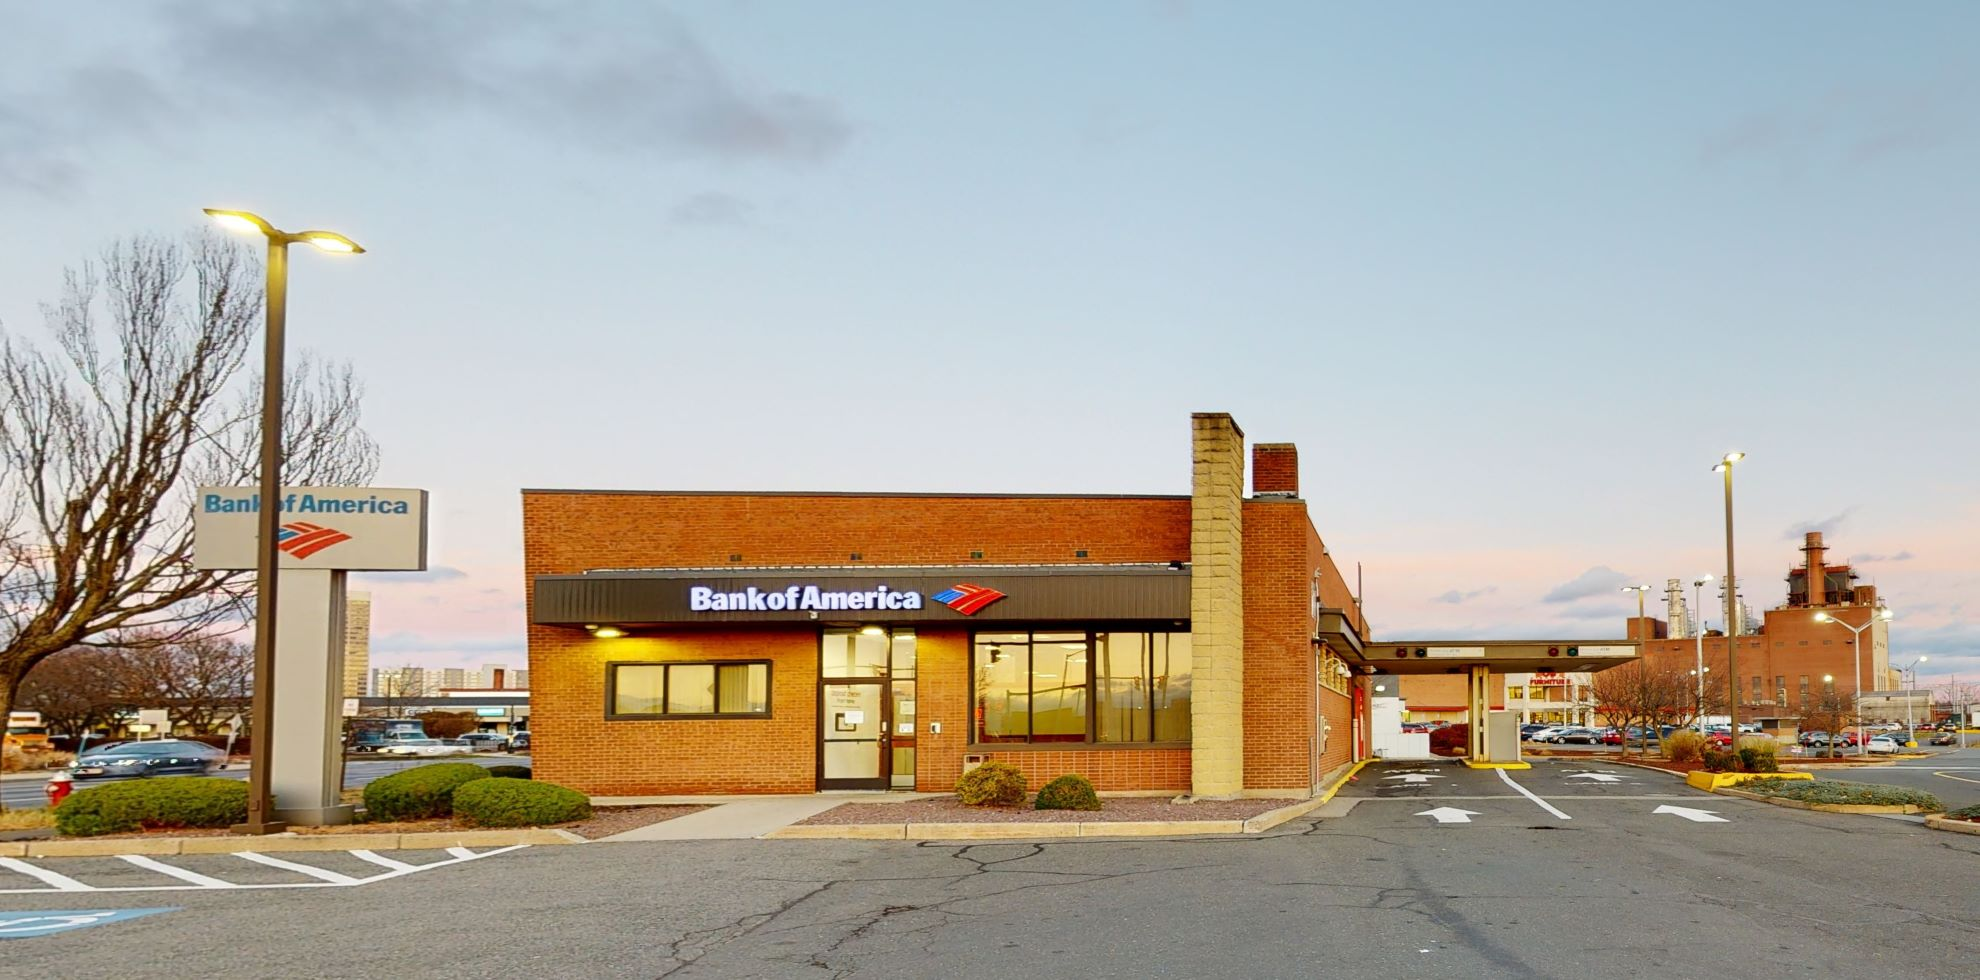 Bank of America financial center with drive-thru ATM   225 Memorial Ave, West Springfield, MA 01089